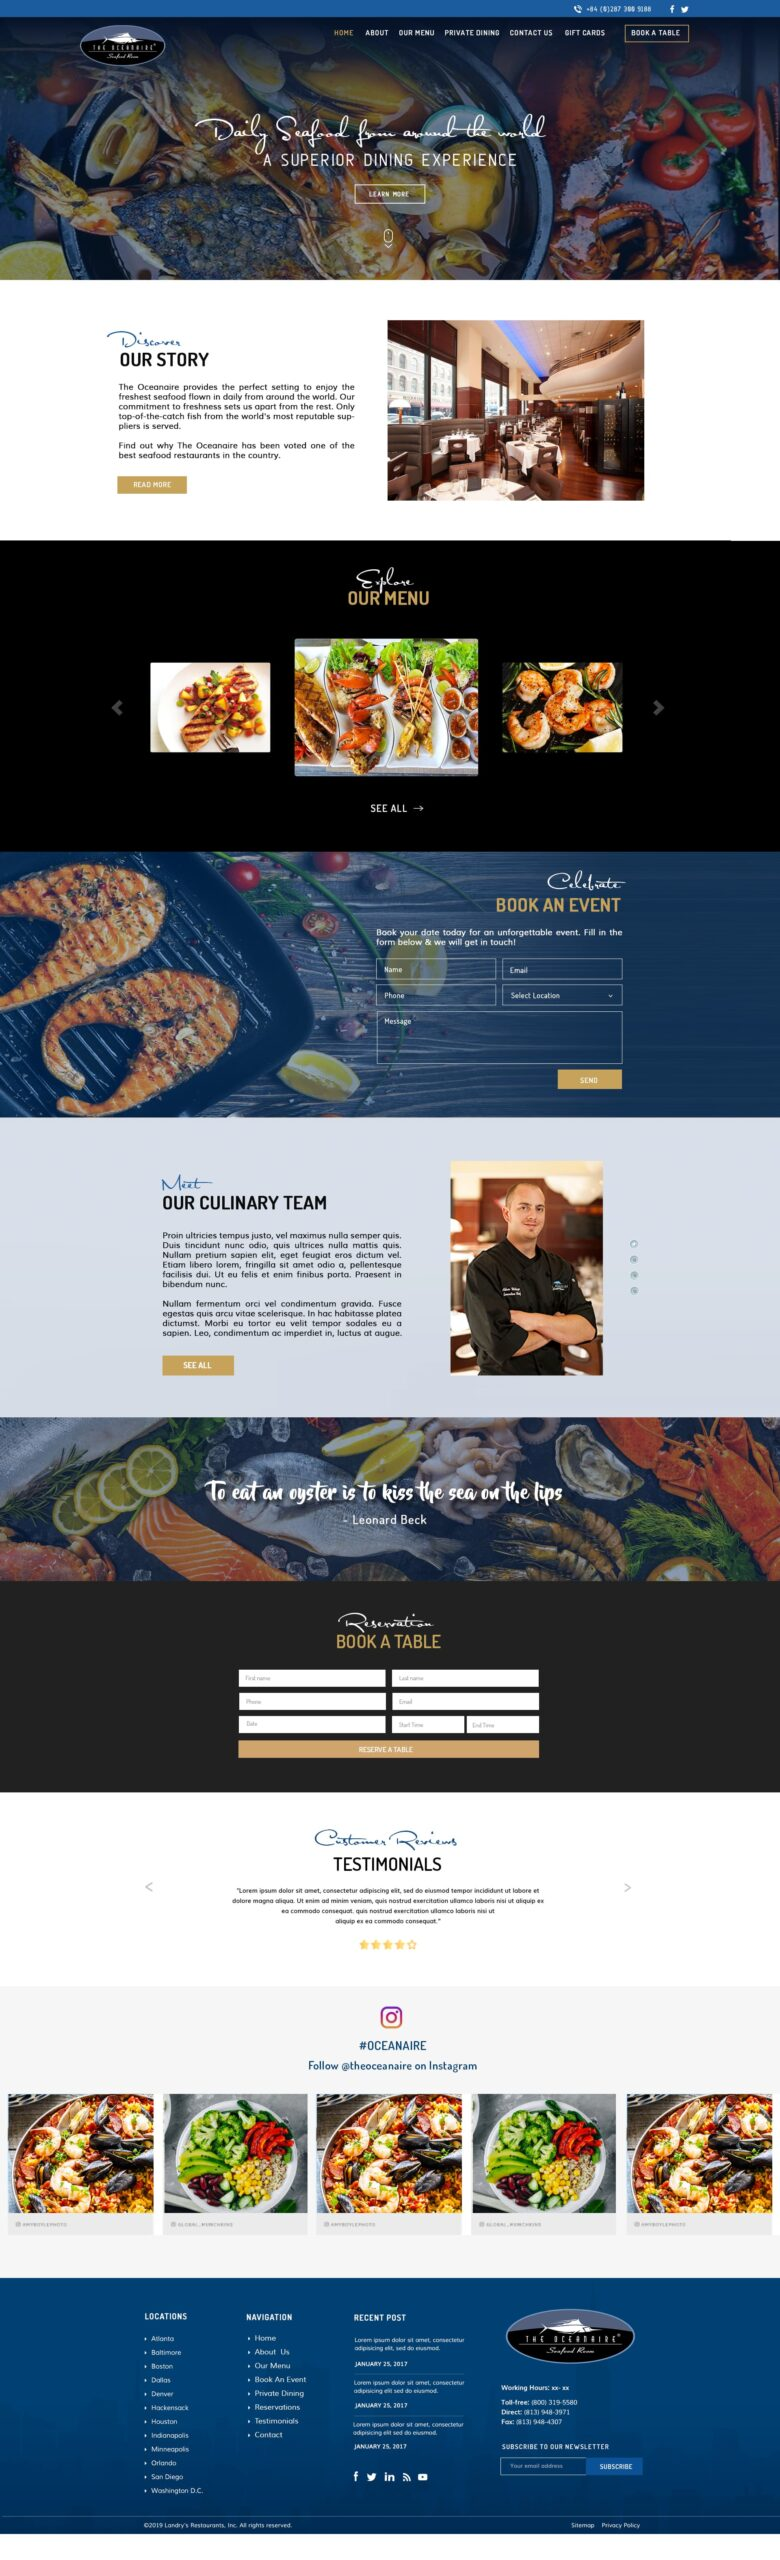 Restaurant Website Design Agency